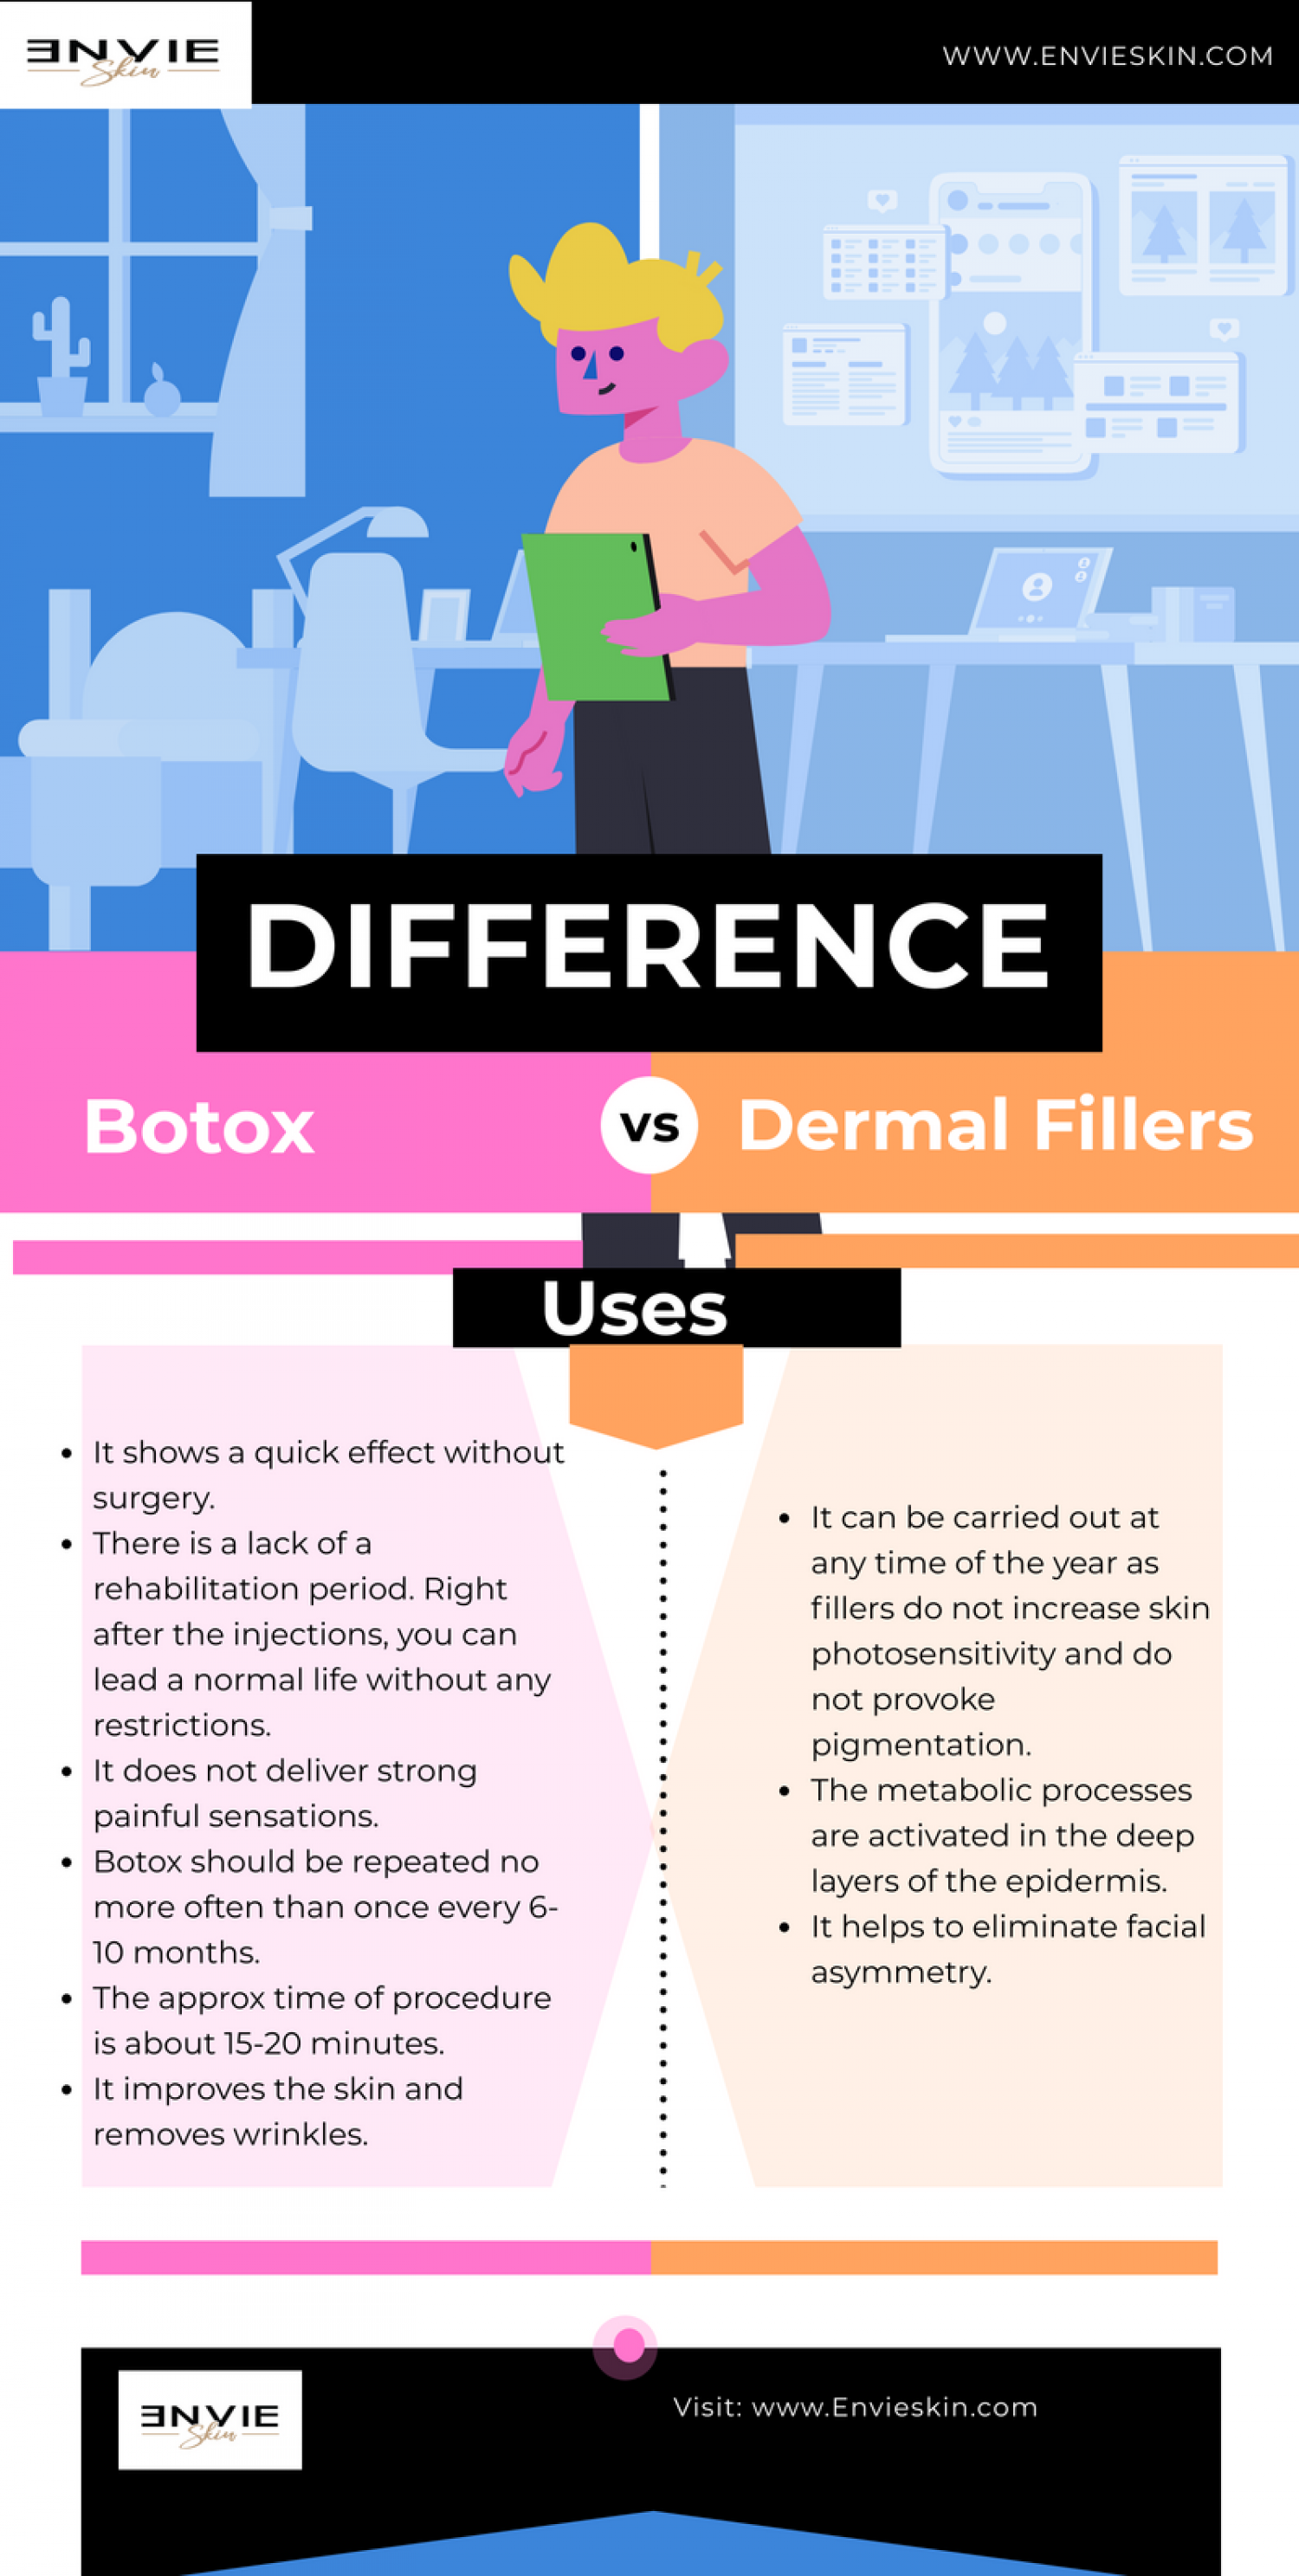 What are the benefits of Botox and Dermal fillers?  Infographic